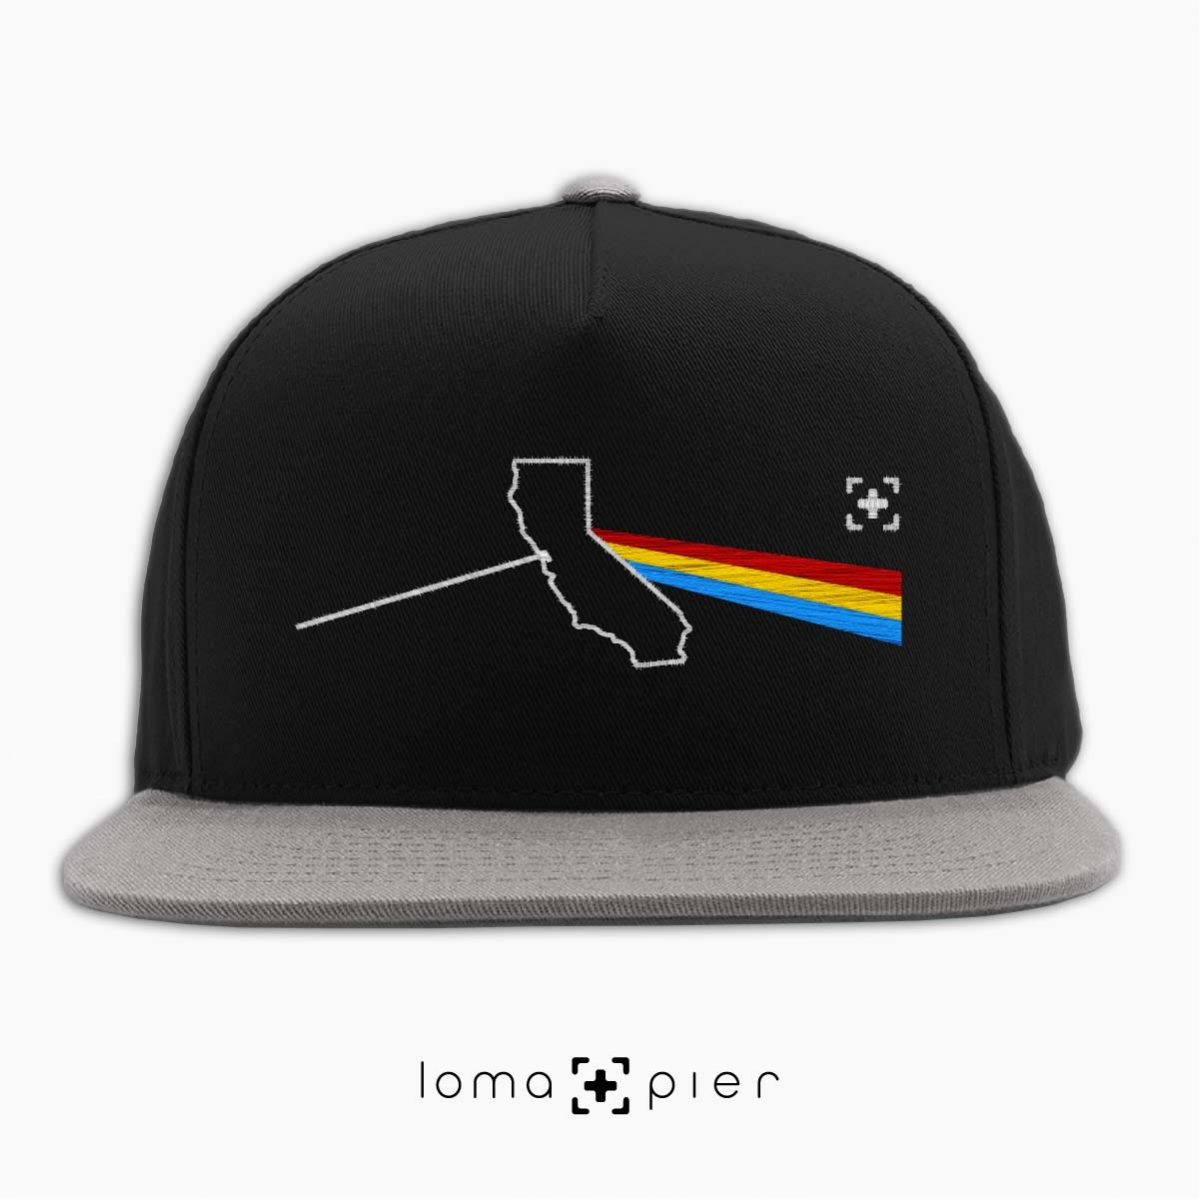 CALIFORNIA STATE PRISM album art snapback hat in black/grey by loma+pier hat store